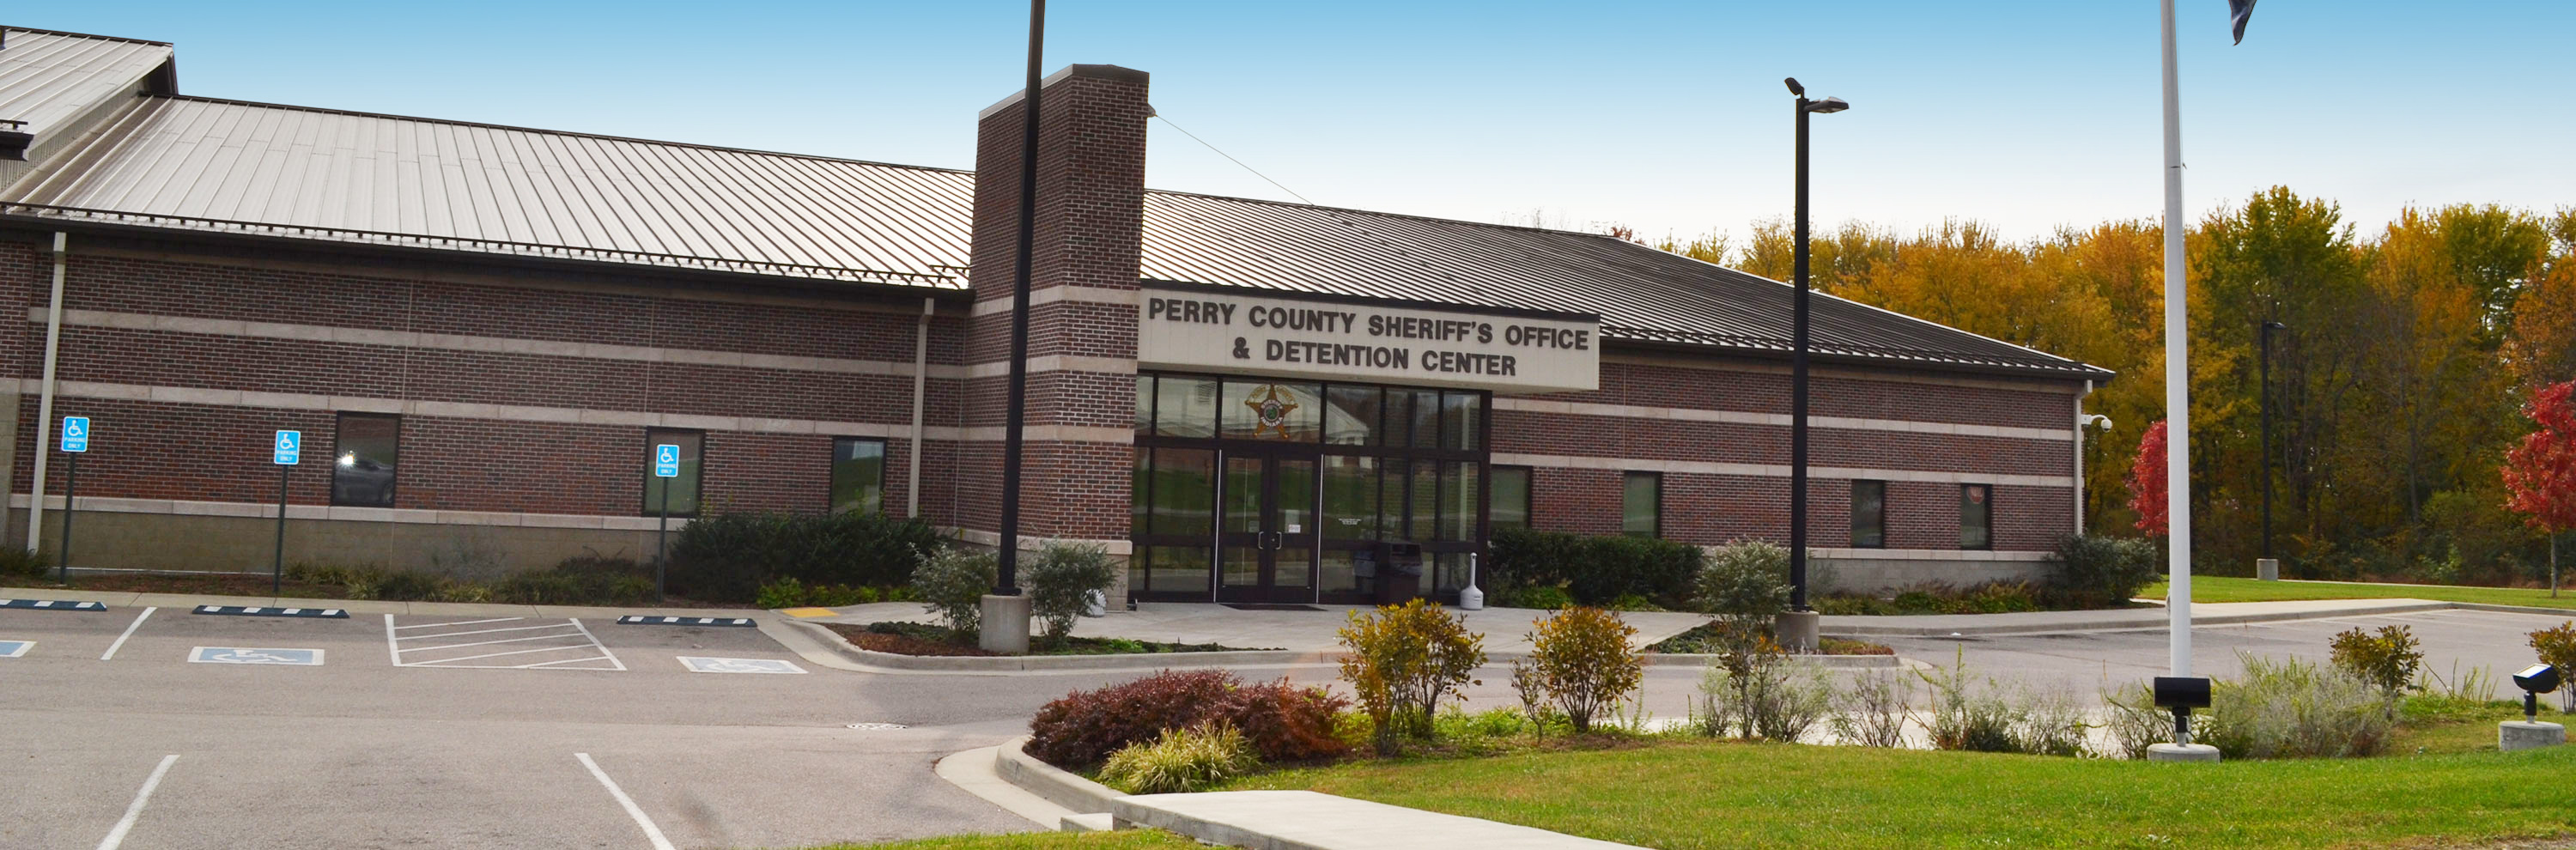 Perry County Jail